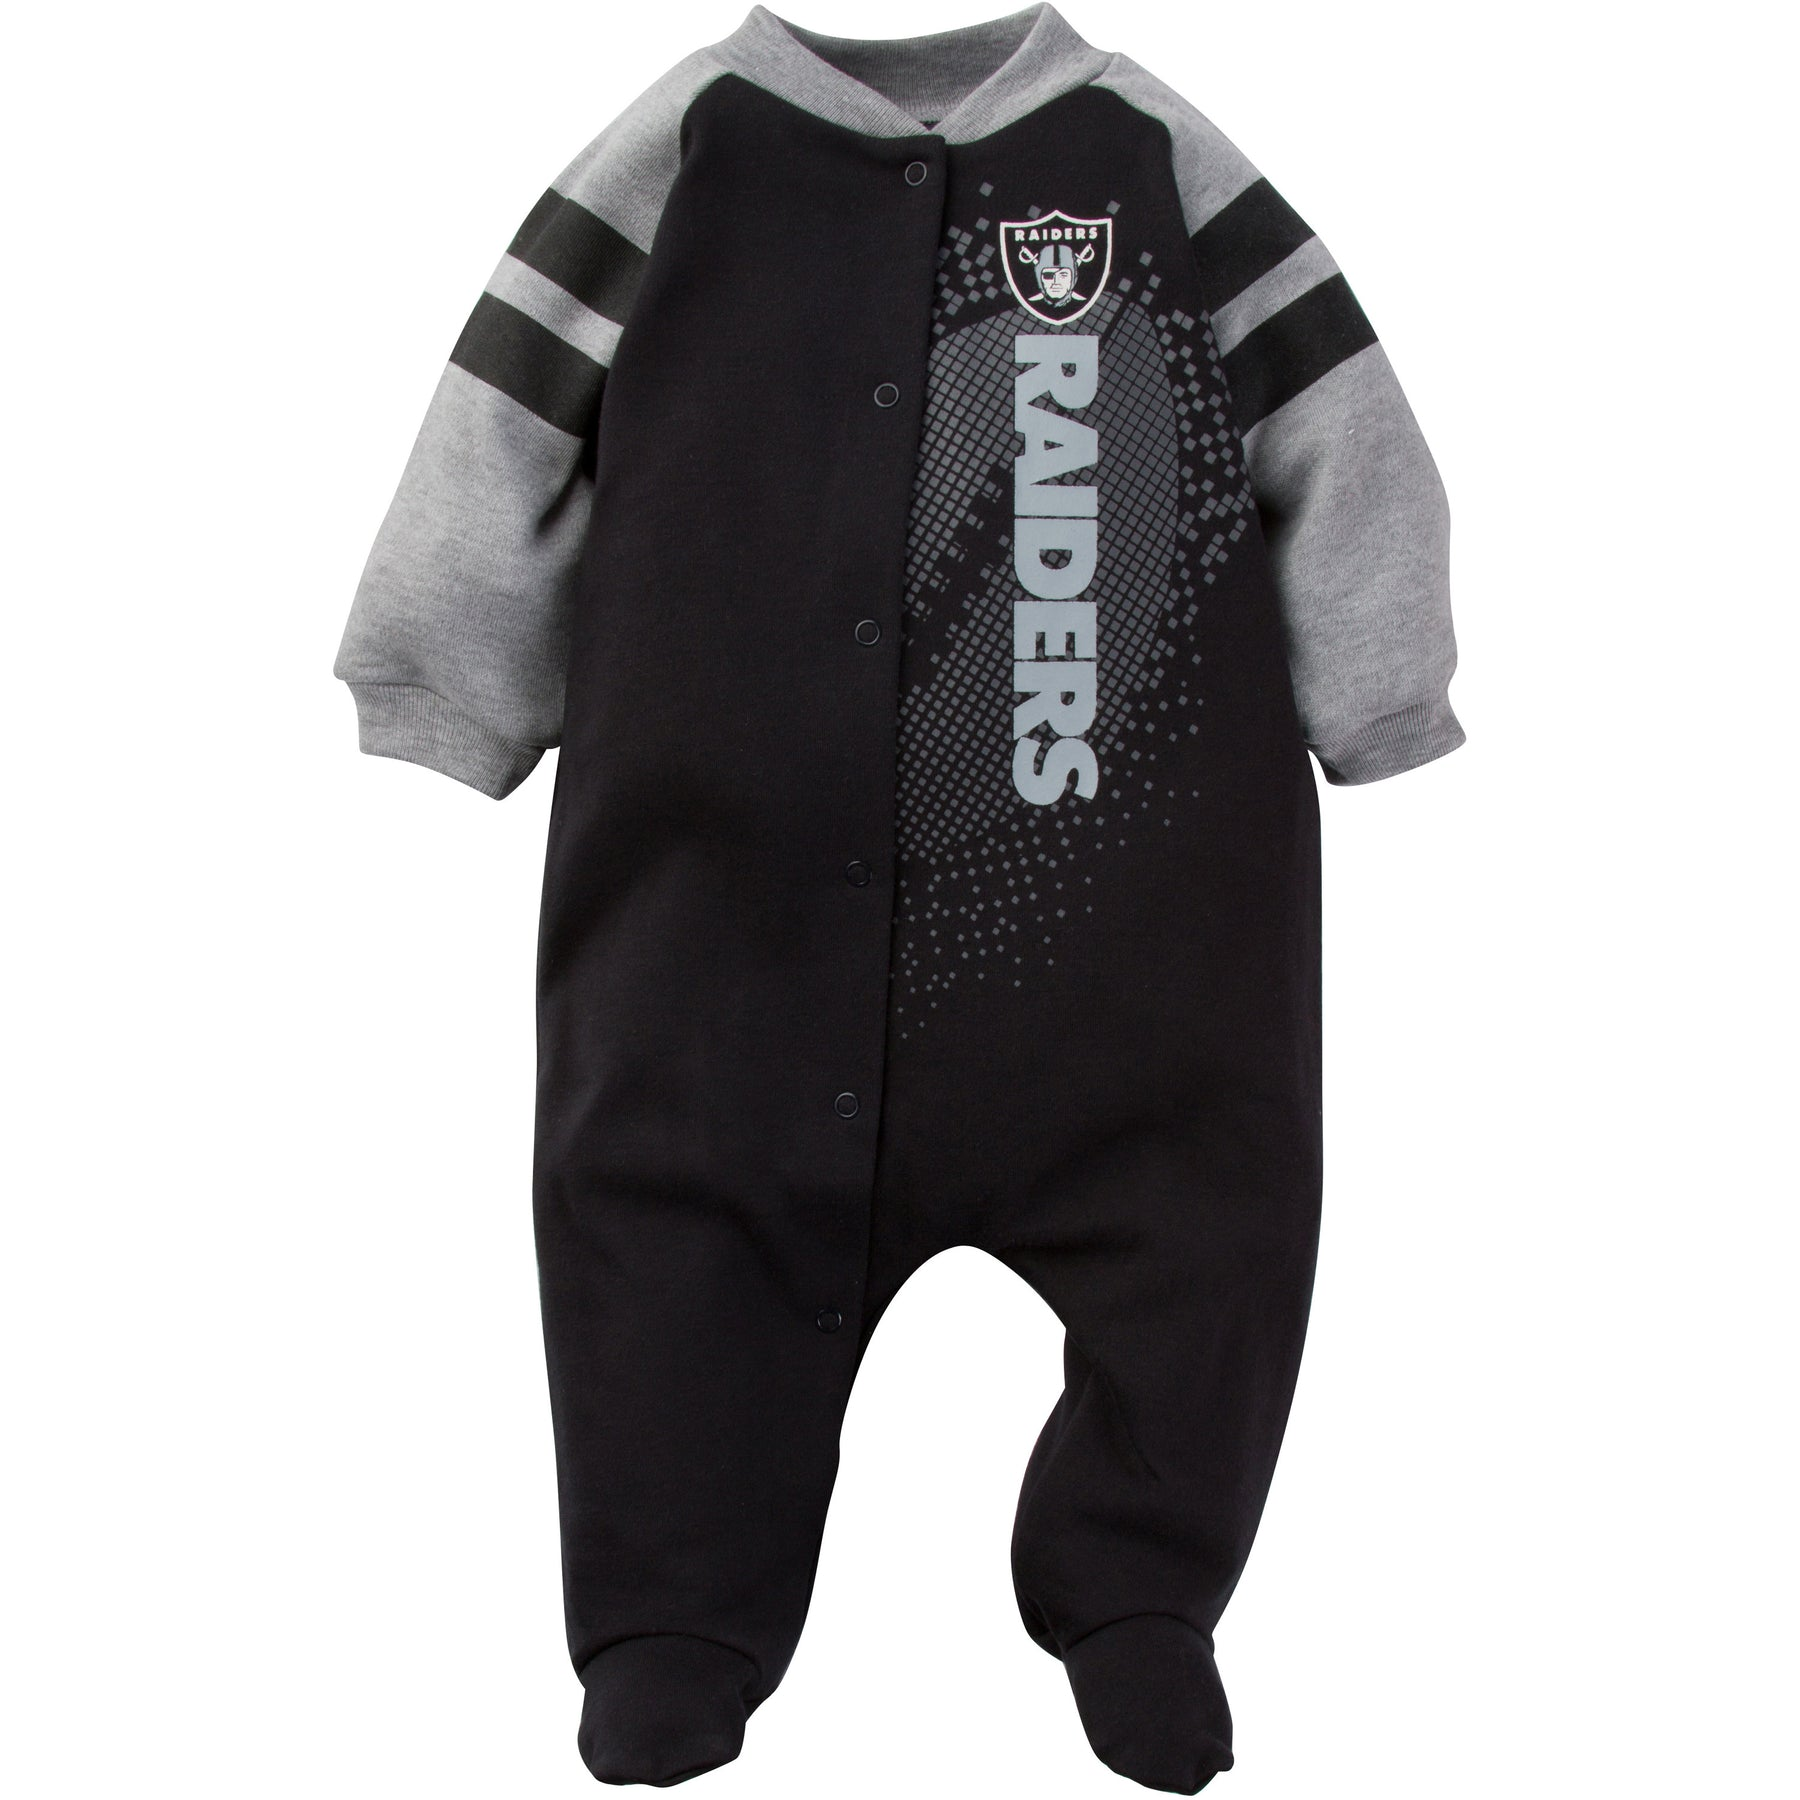 NFL Baby Clothes Infant and Toddler NFL Apparel – Page 2 – babyfans